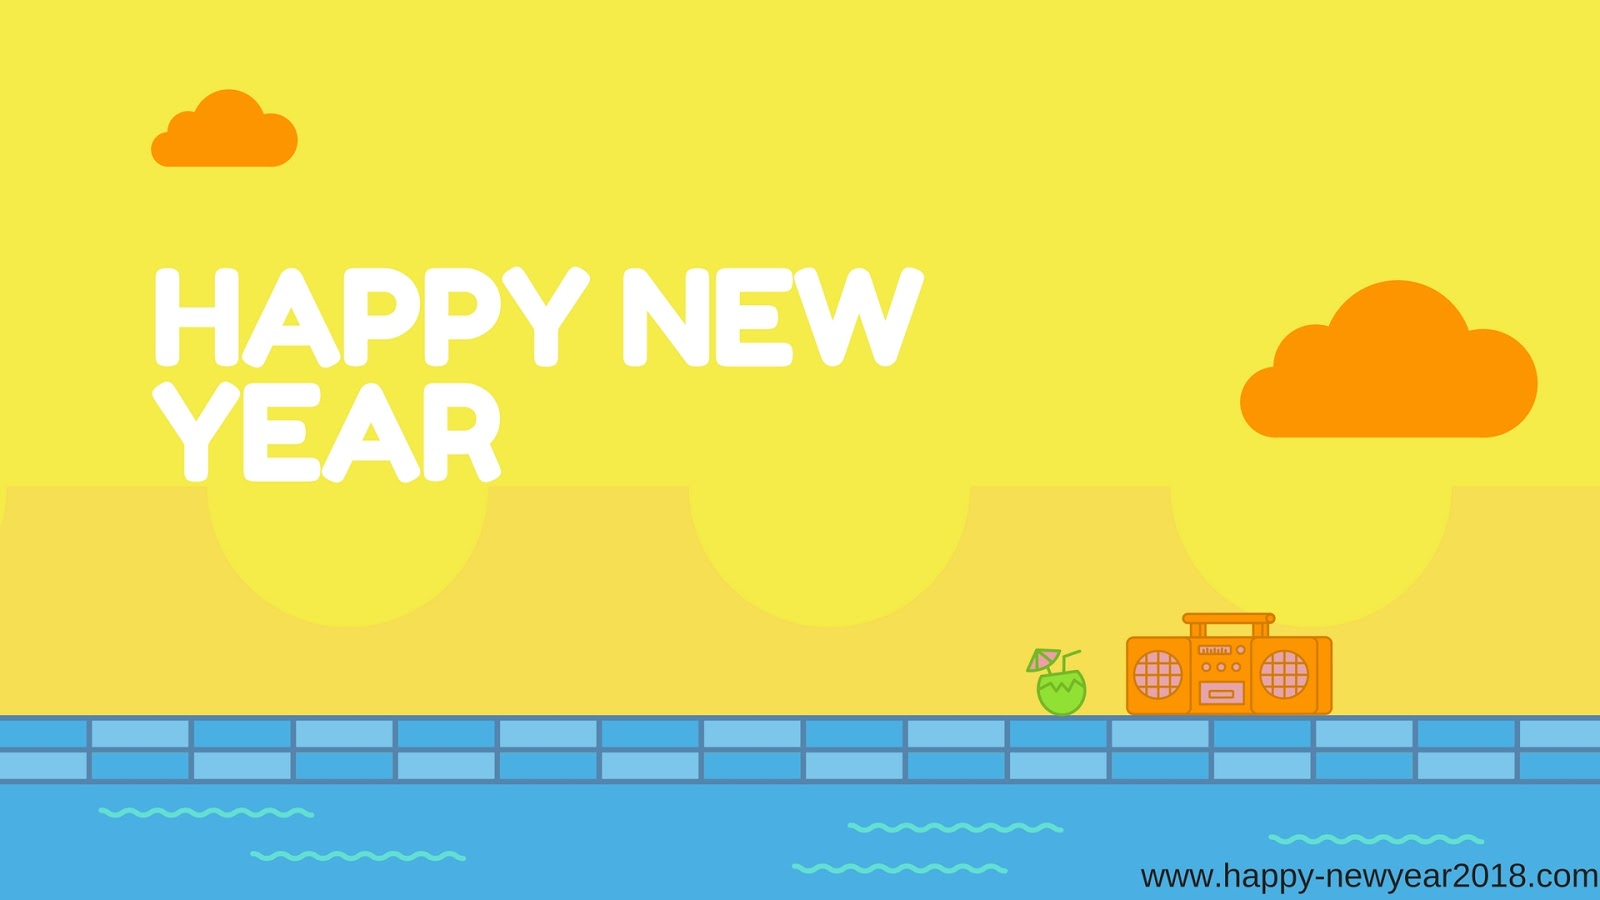 new year 2018 images for family